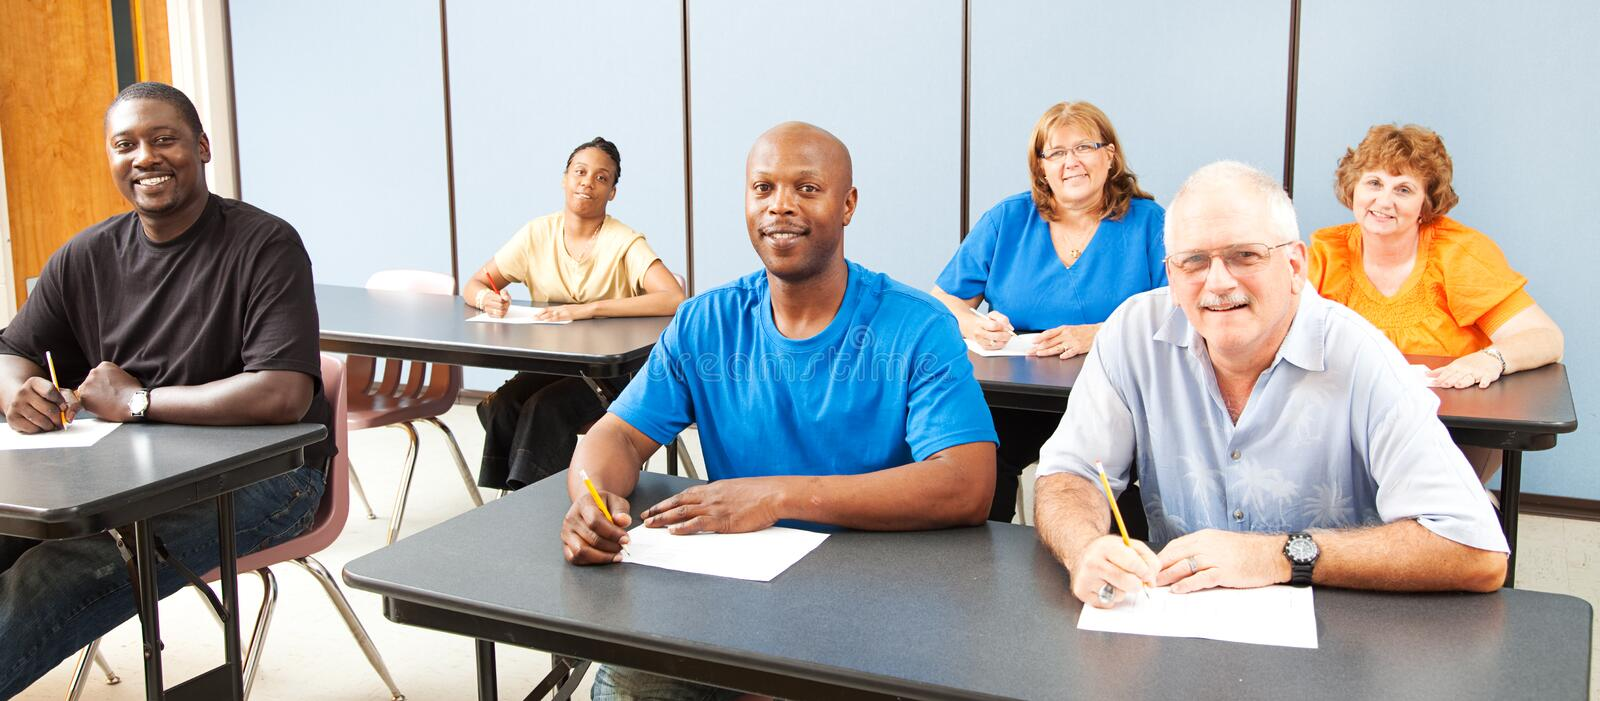 Download Diversity In Adult Education - Banner Stock Image - Image: 23178883